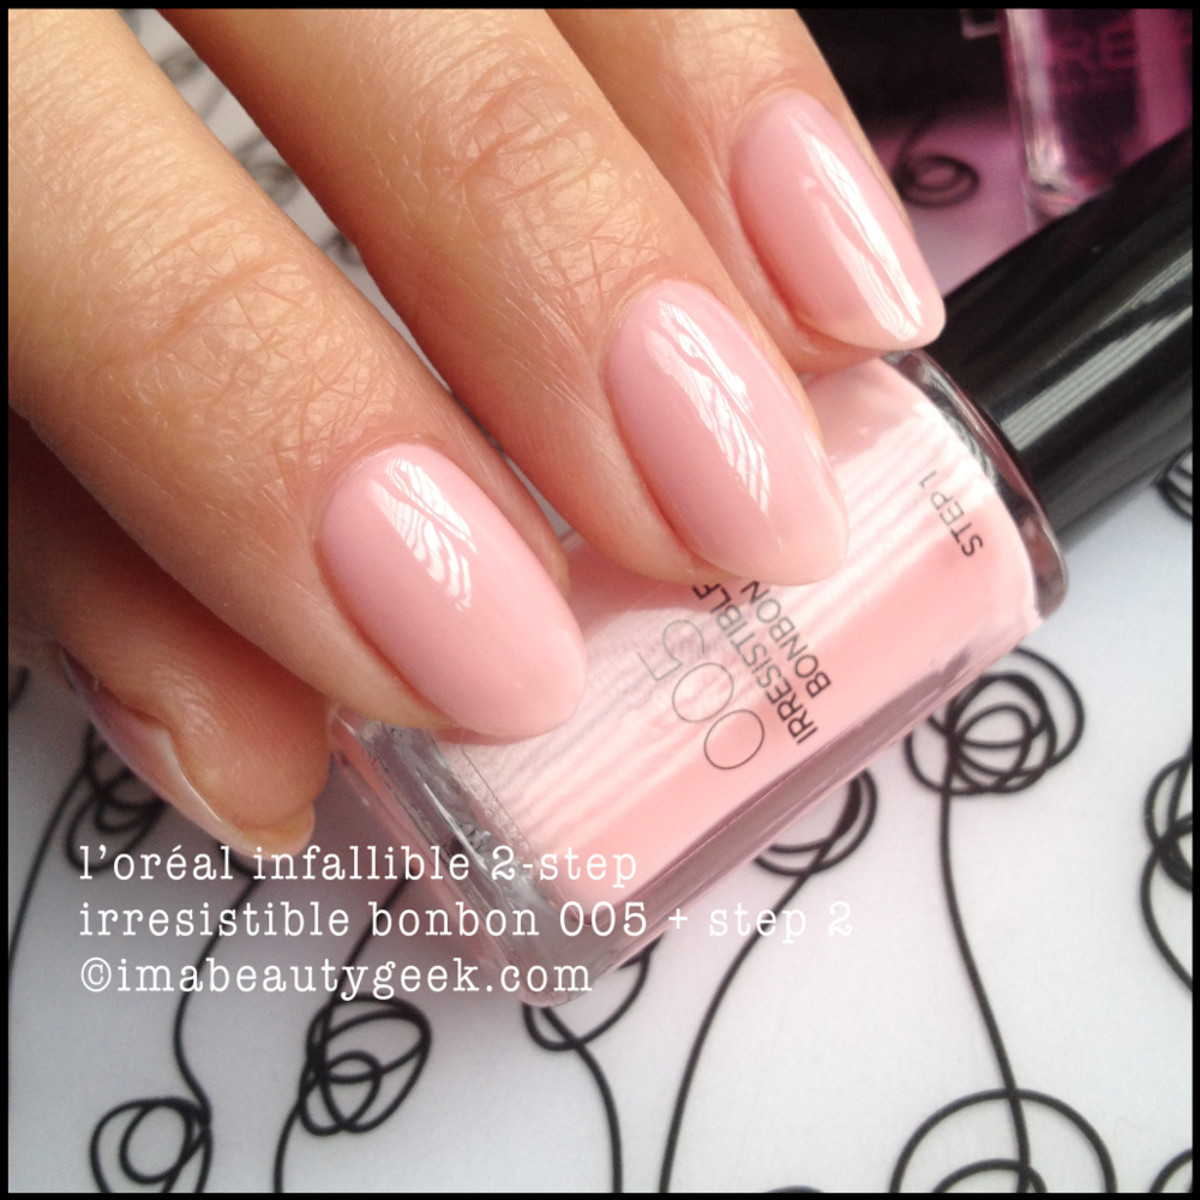 LOreal infallible 2 step BonBon w Topcoat